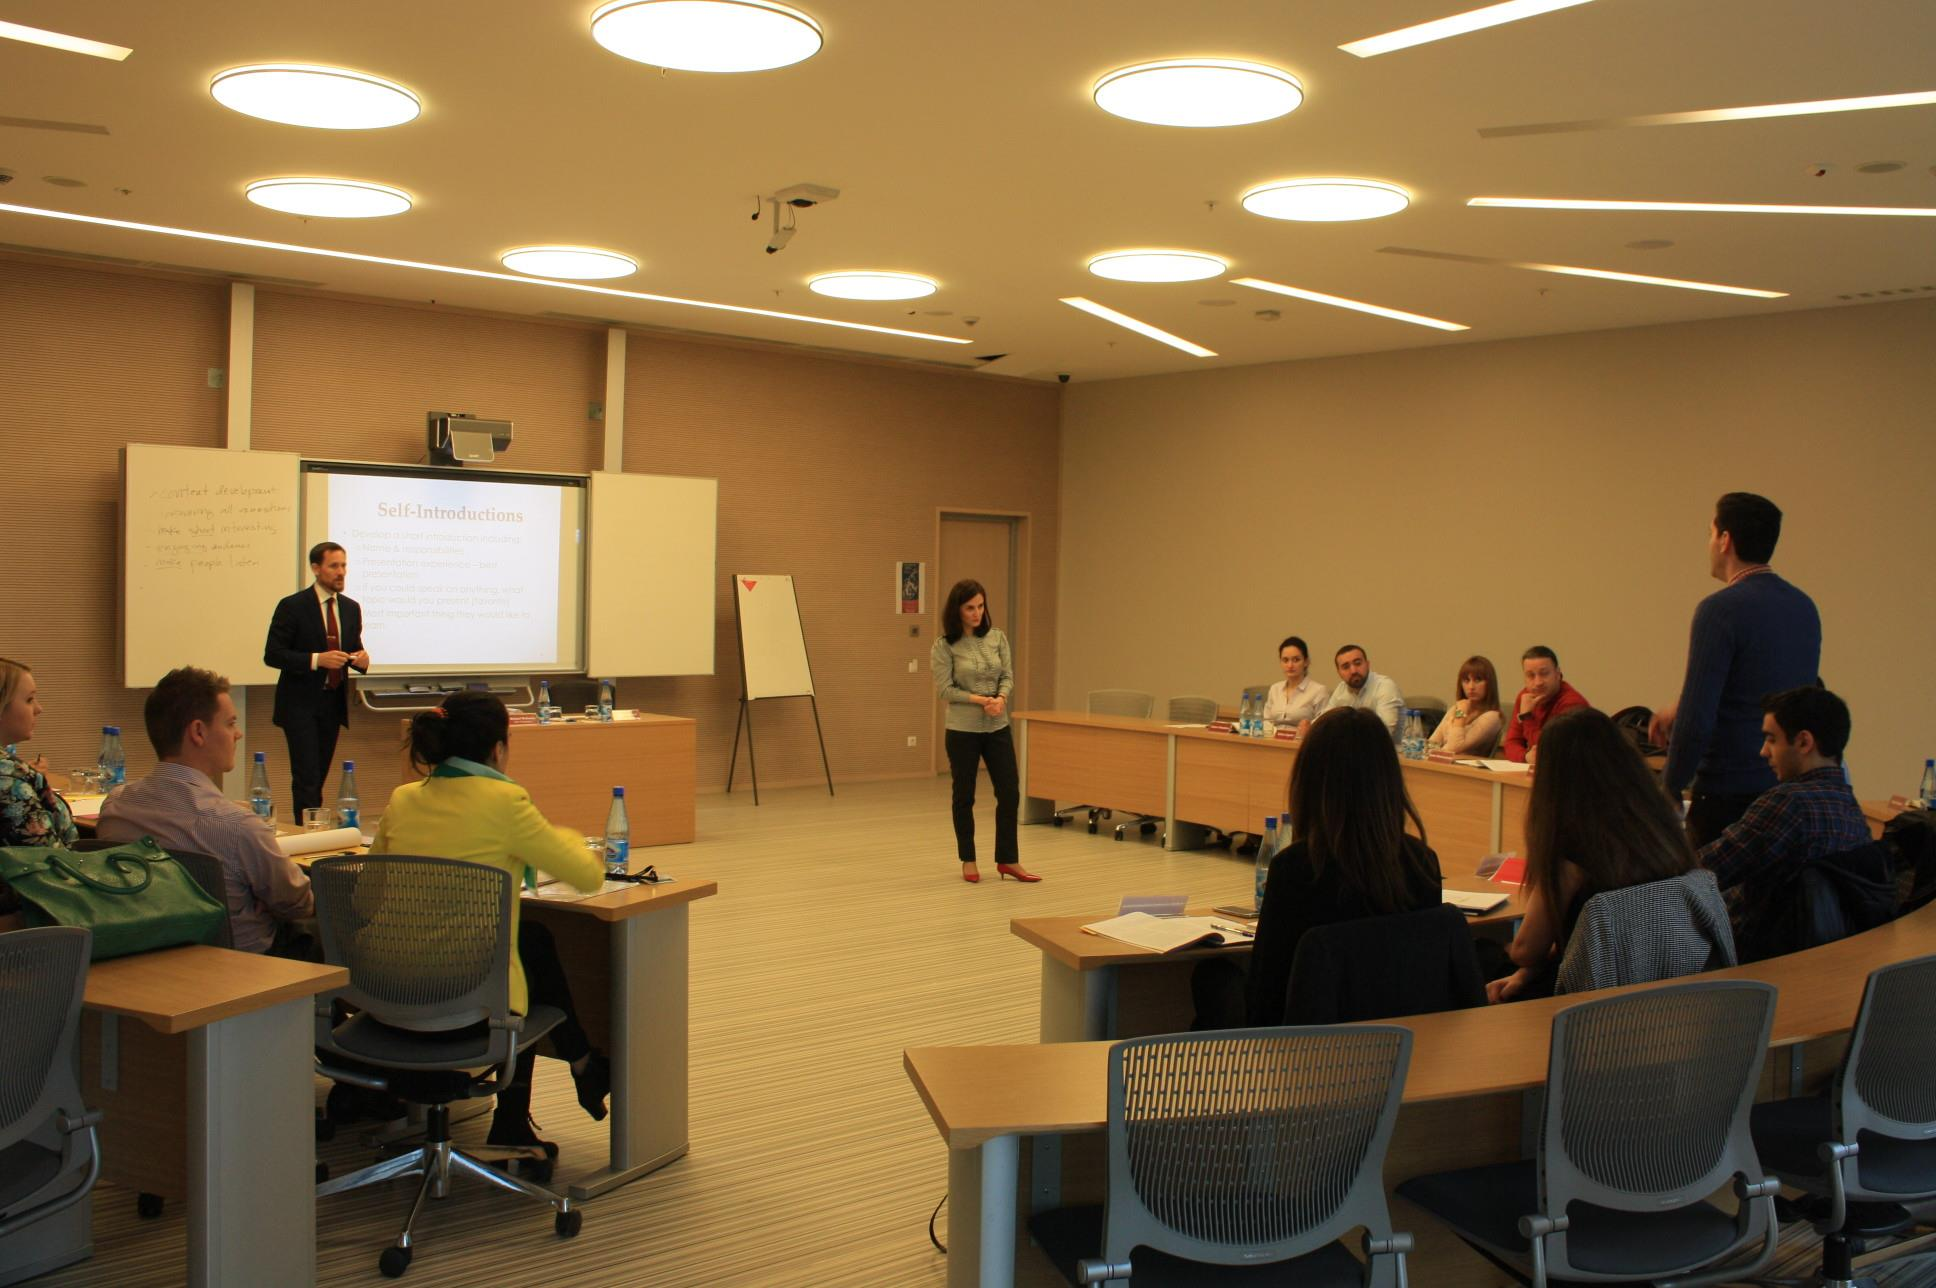 Successful applicants to the Baku 2015 Academy will have the opportunity to work on the first-ever European Games ©Baku 2015